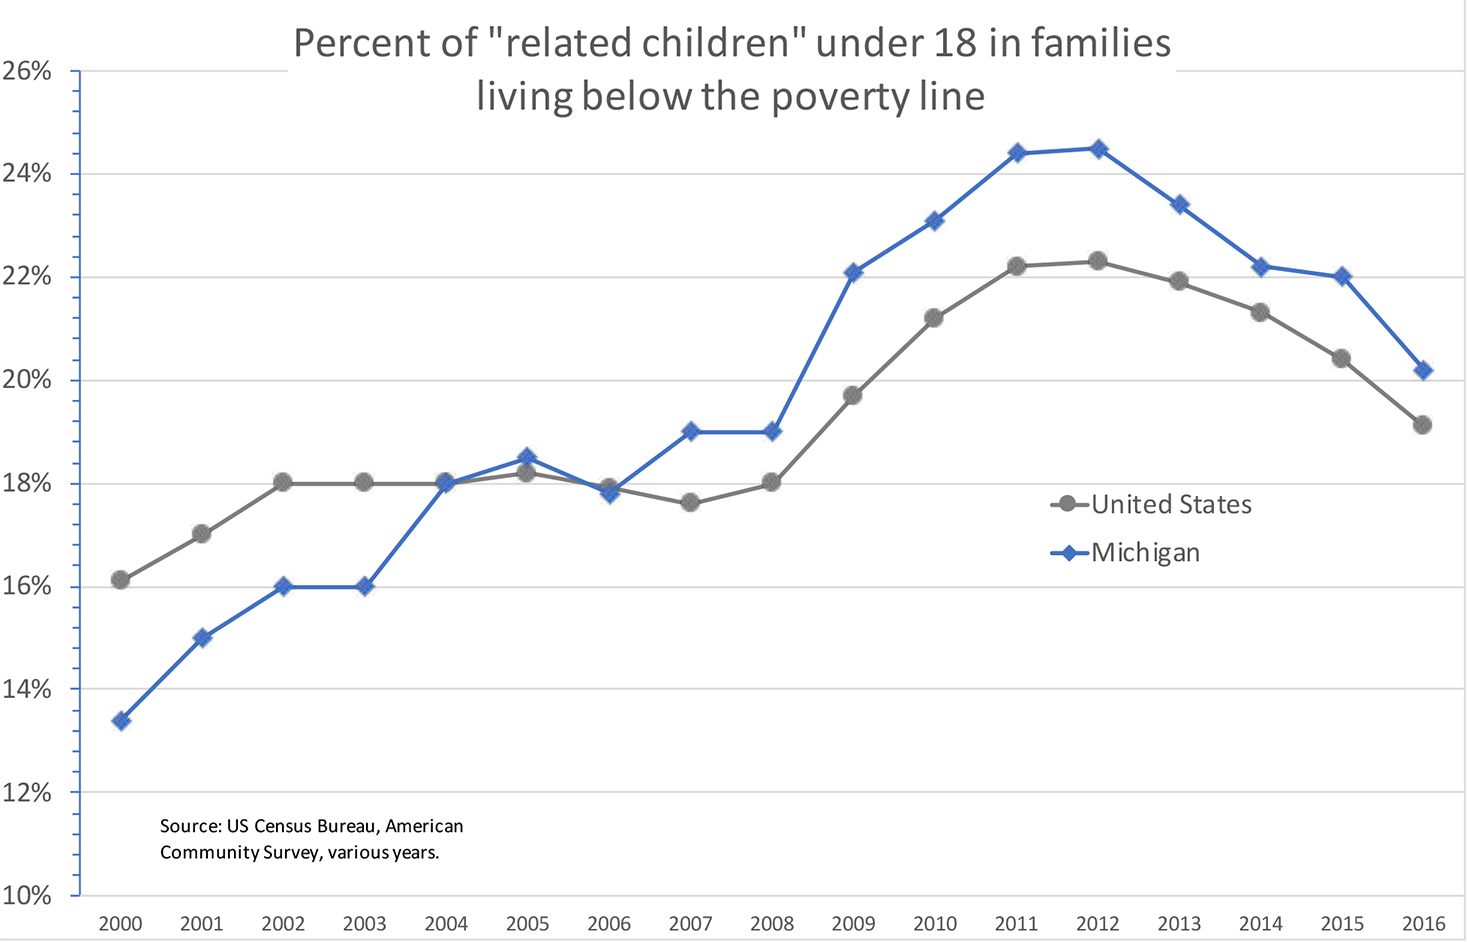 MI vs US percent children under 18 in poverty